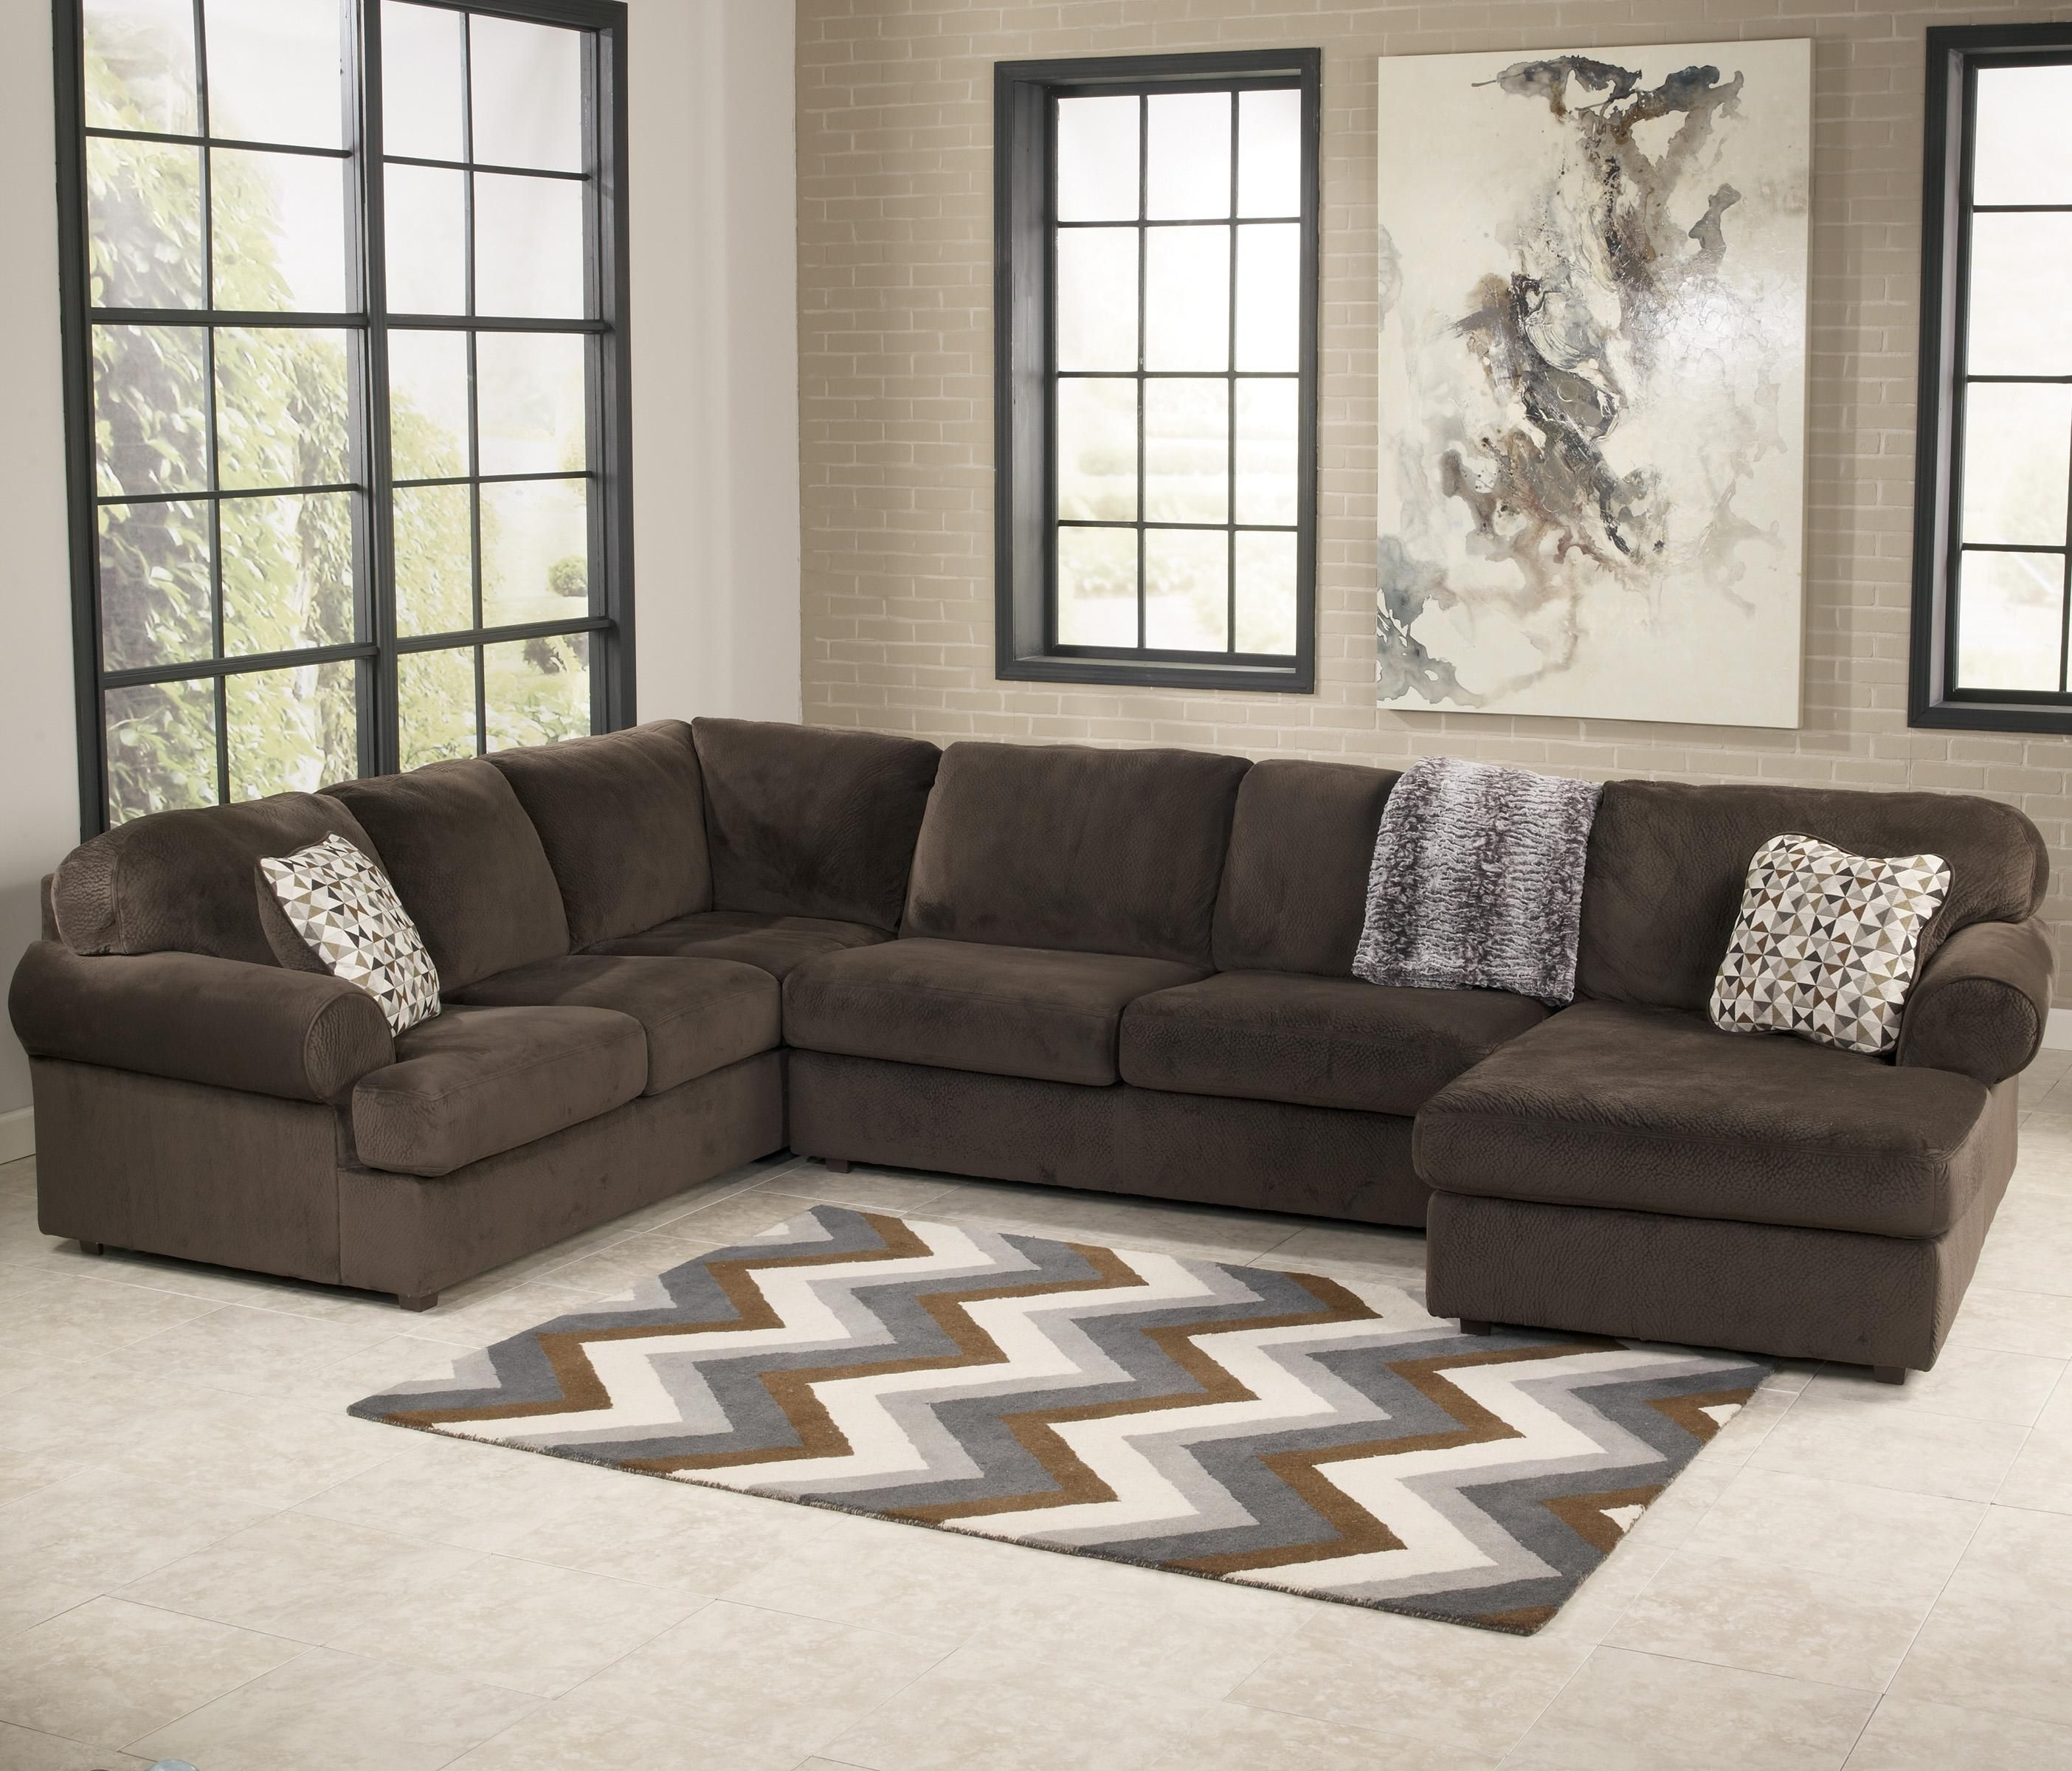 2019 Sectional Sofas Austin Sleeper Sofa Tx Texas Leather Stock Photos Throughout At